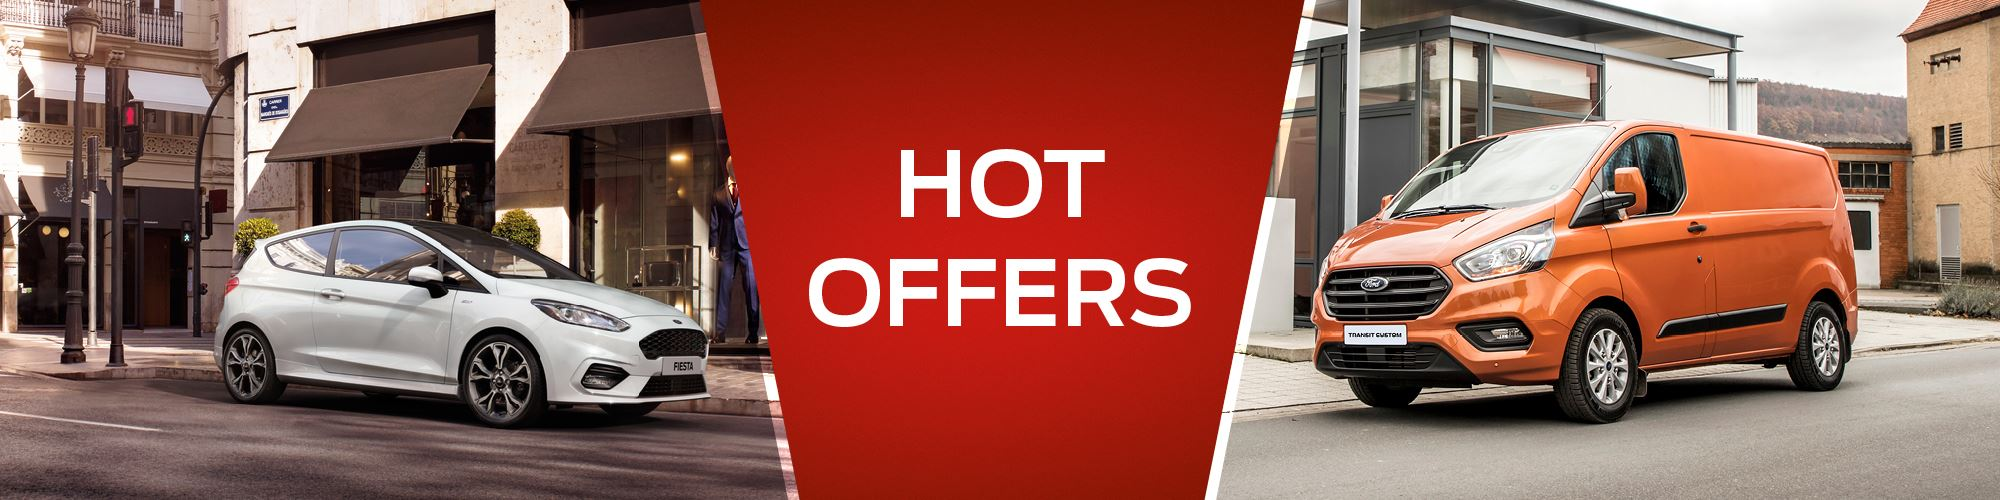 TrustFord Hot Offers